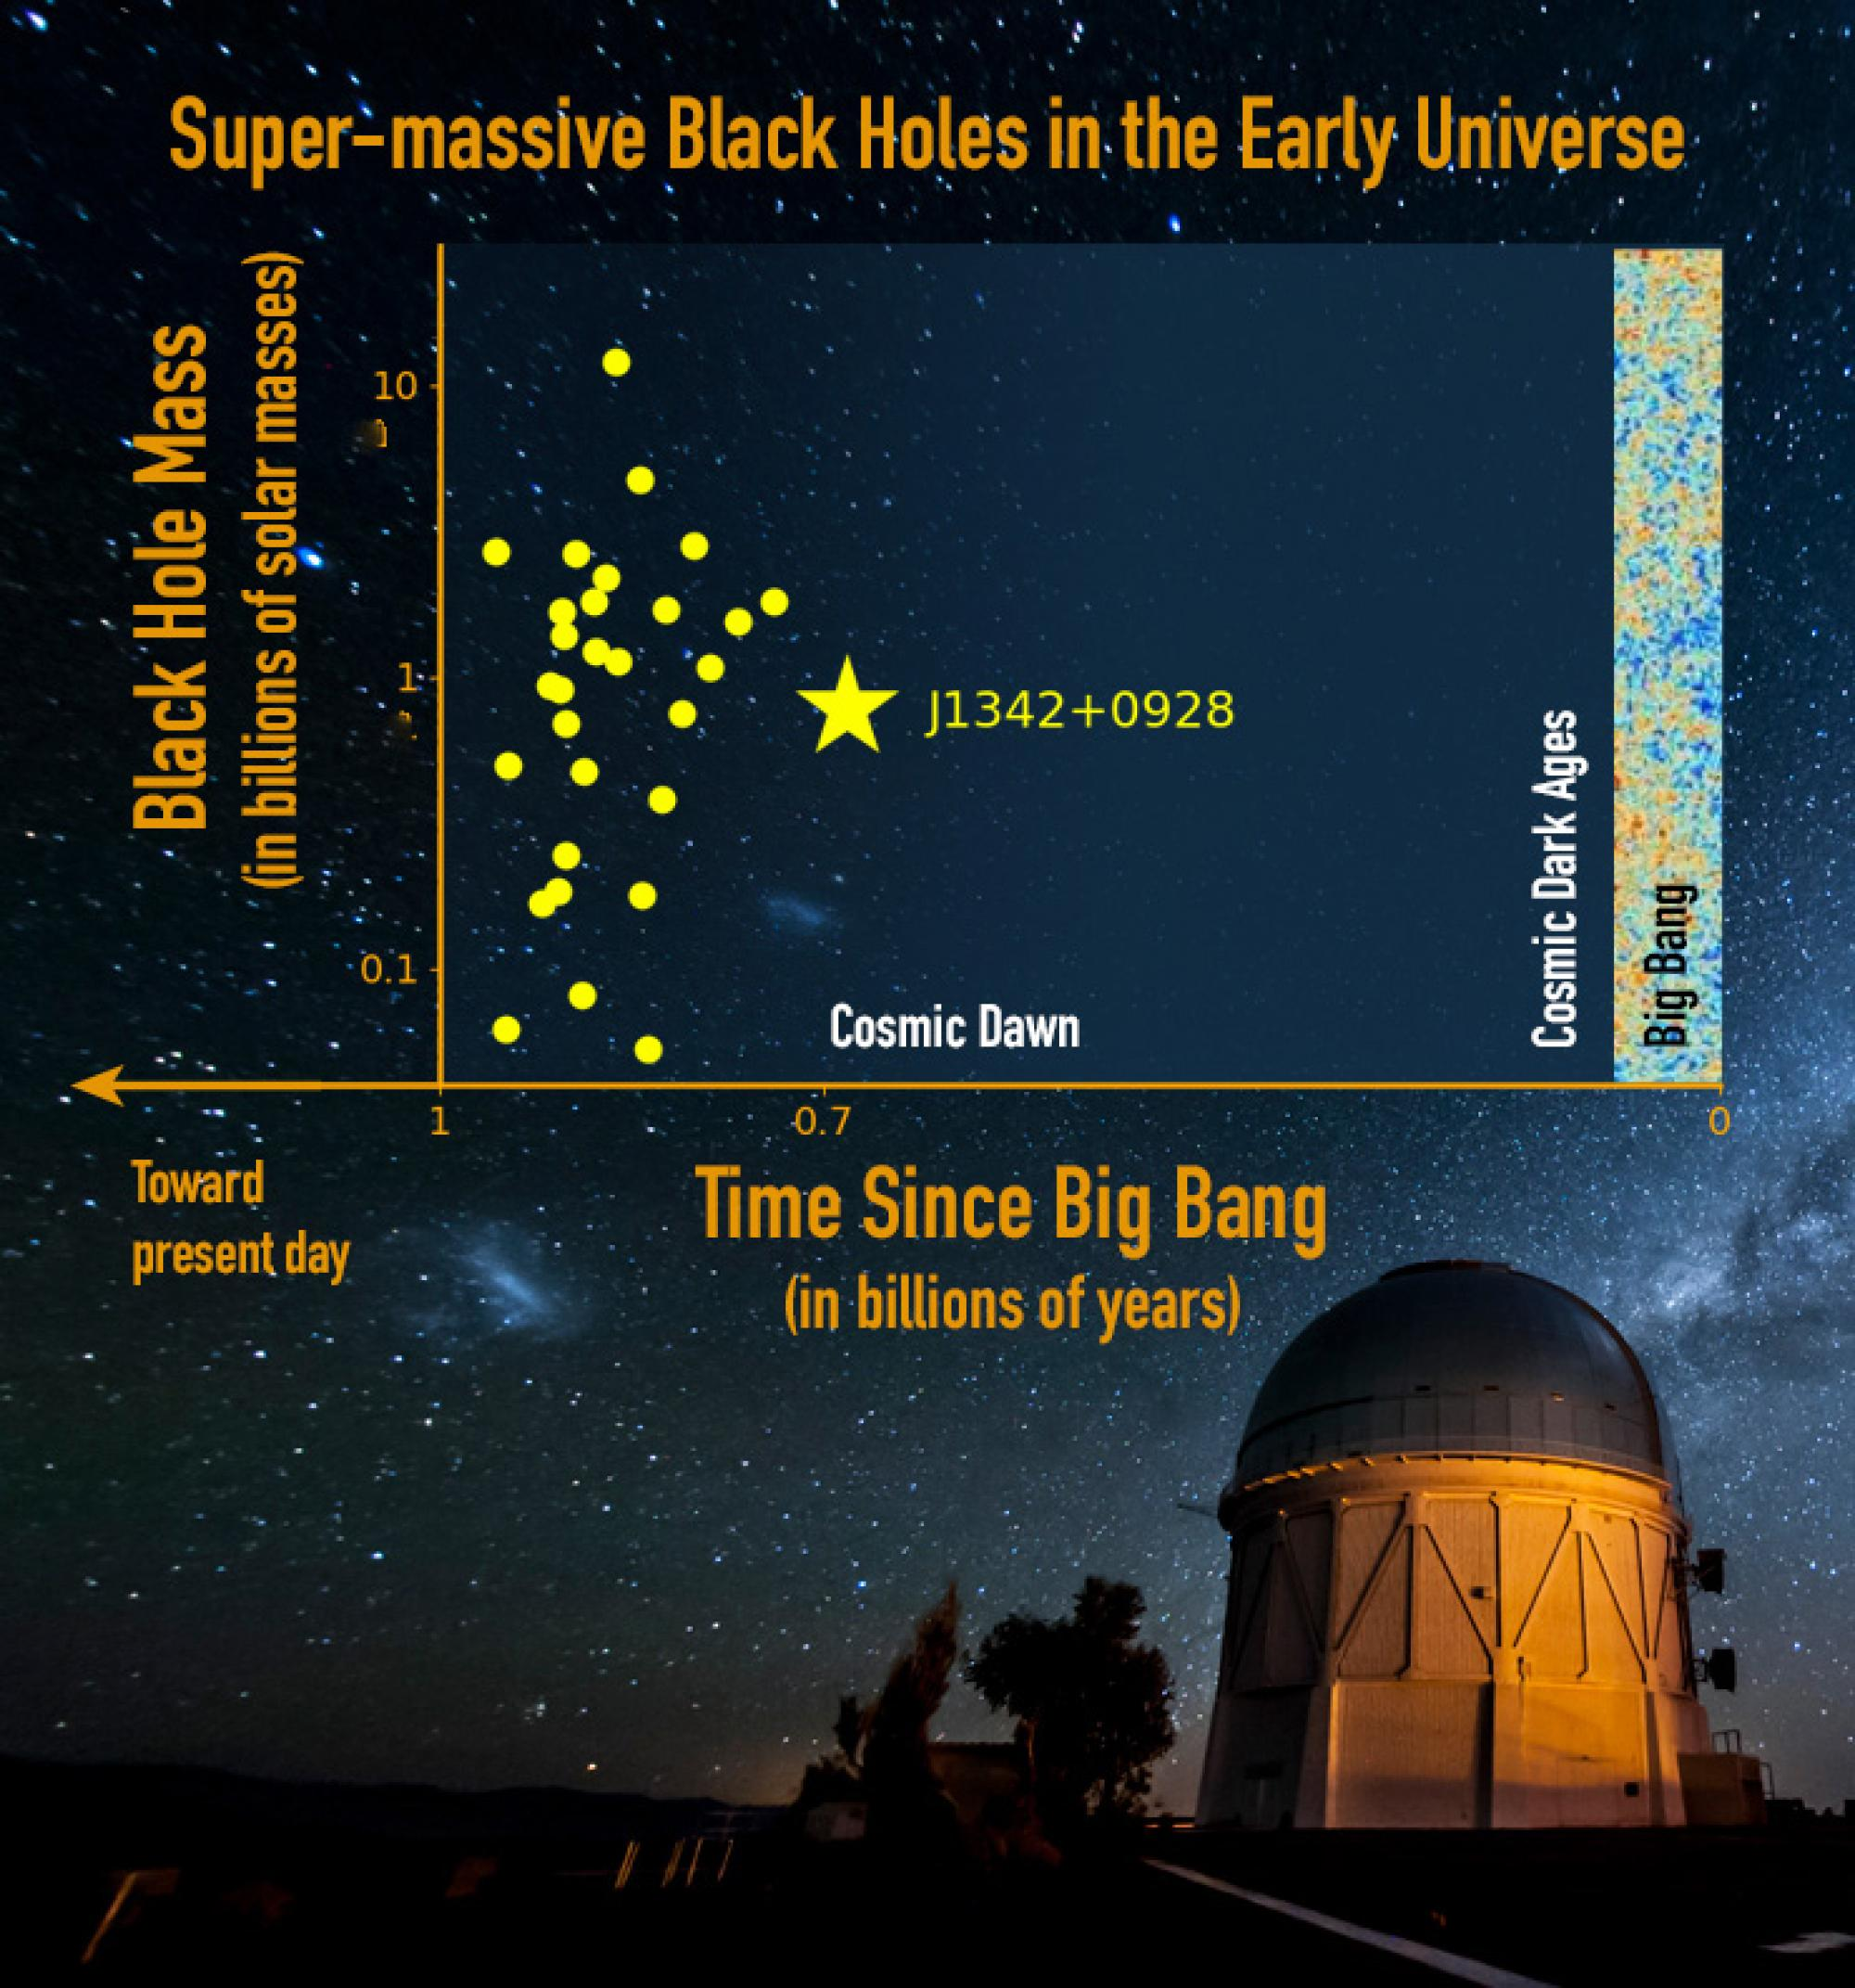 The new supermassive black hole J1342+0928 , which resides in a mostly neutral universe at the edge of cosmic dawn, is more distant than any other found to date . The uppermost dot represents the most massive black hole ever discovered .